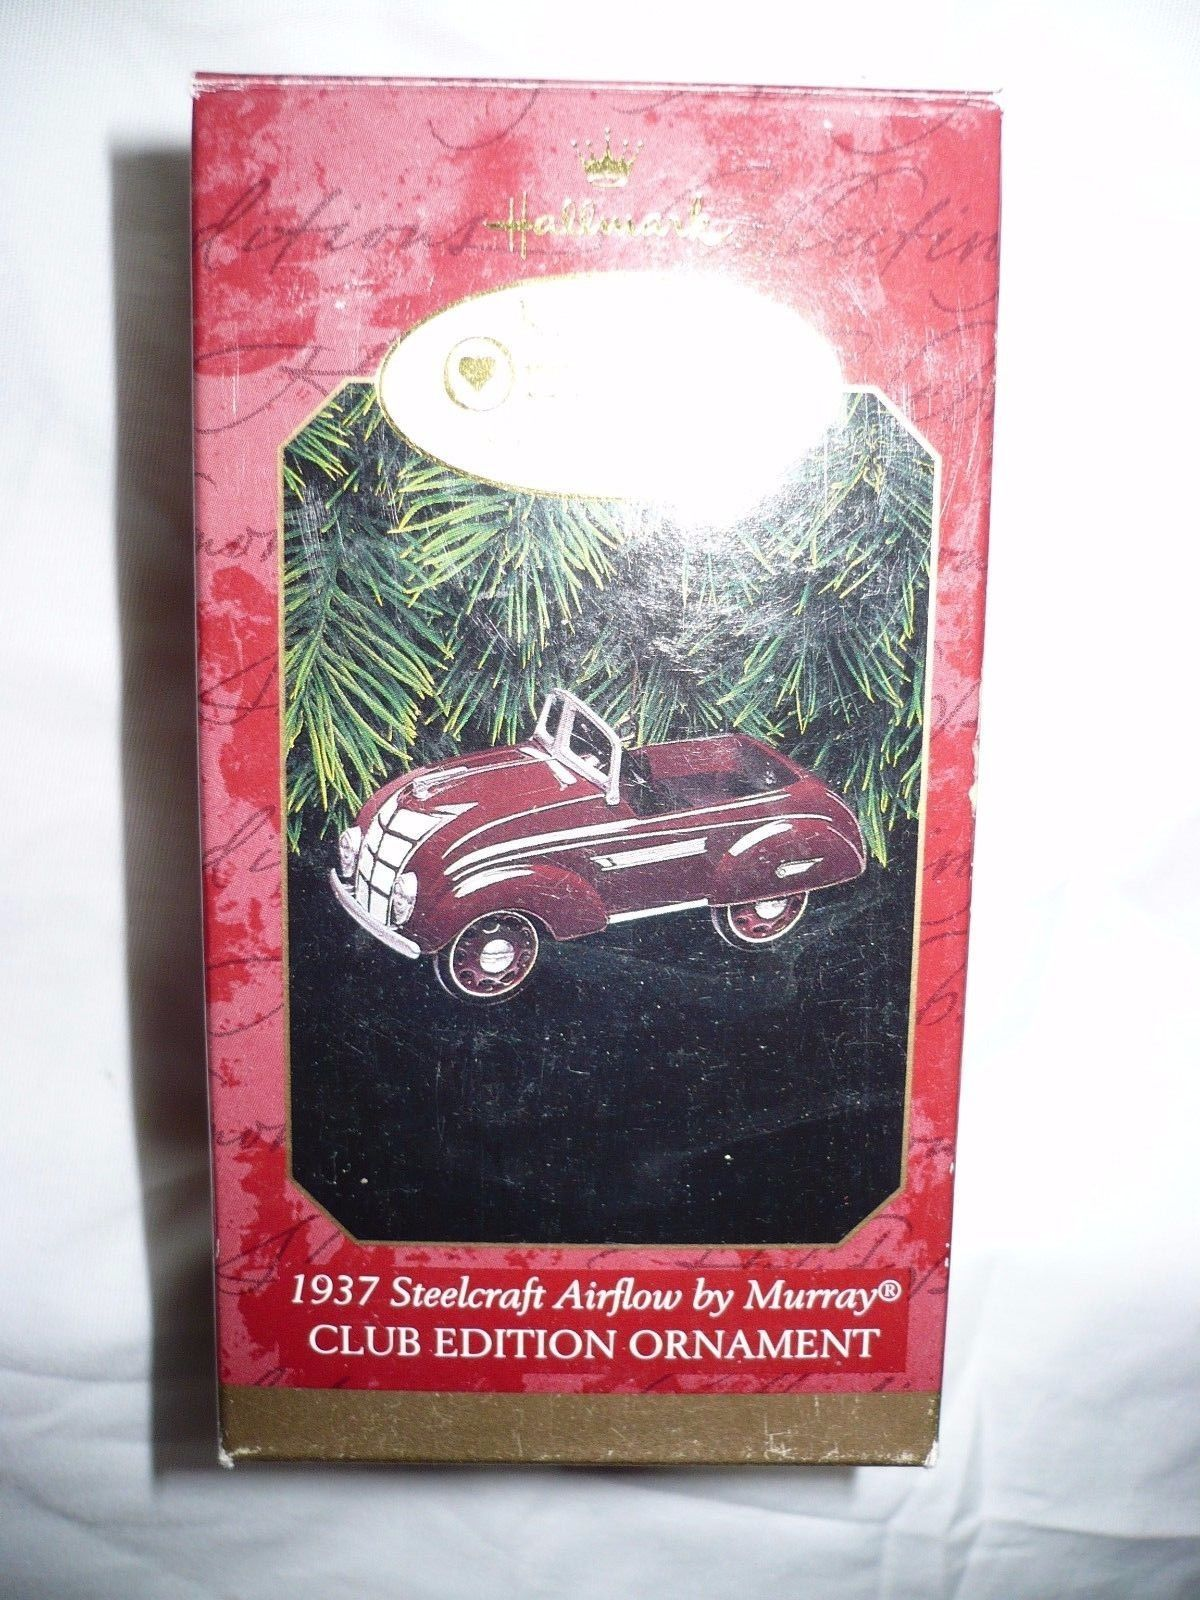 Primary image for Hallmark Keepsake Ornament 1937 Steelcraft Airflow by Murray  Club Edition